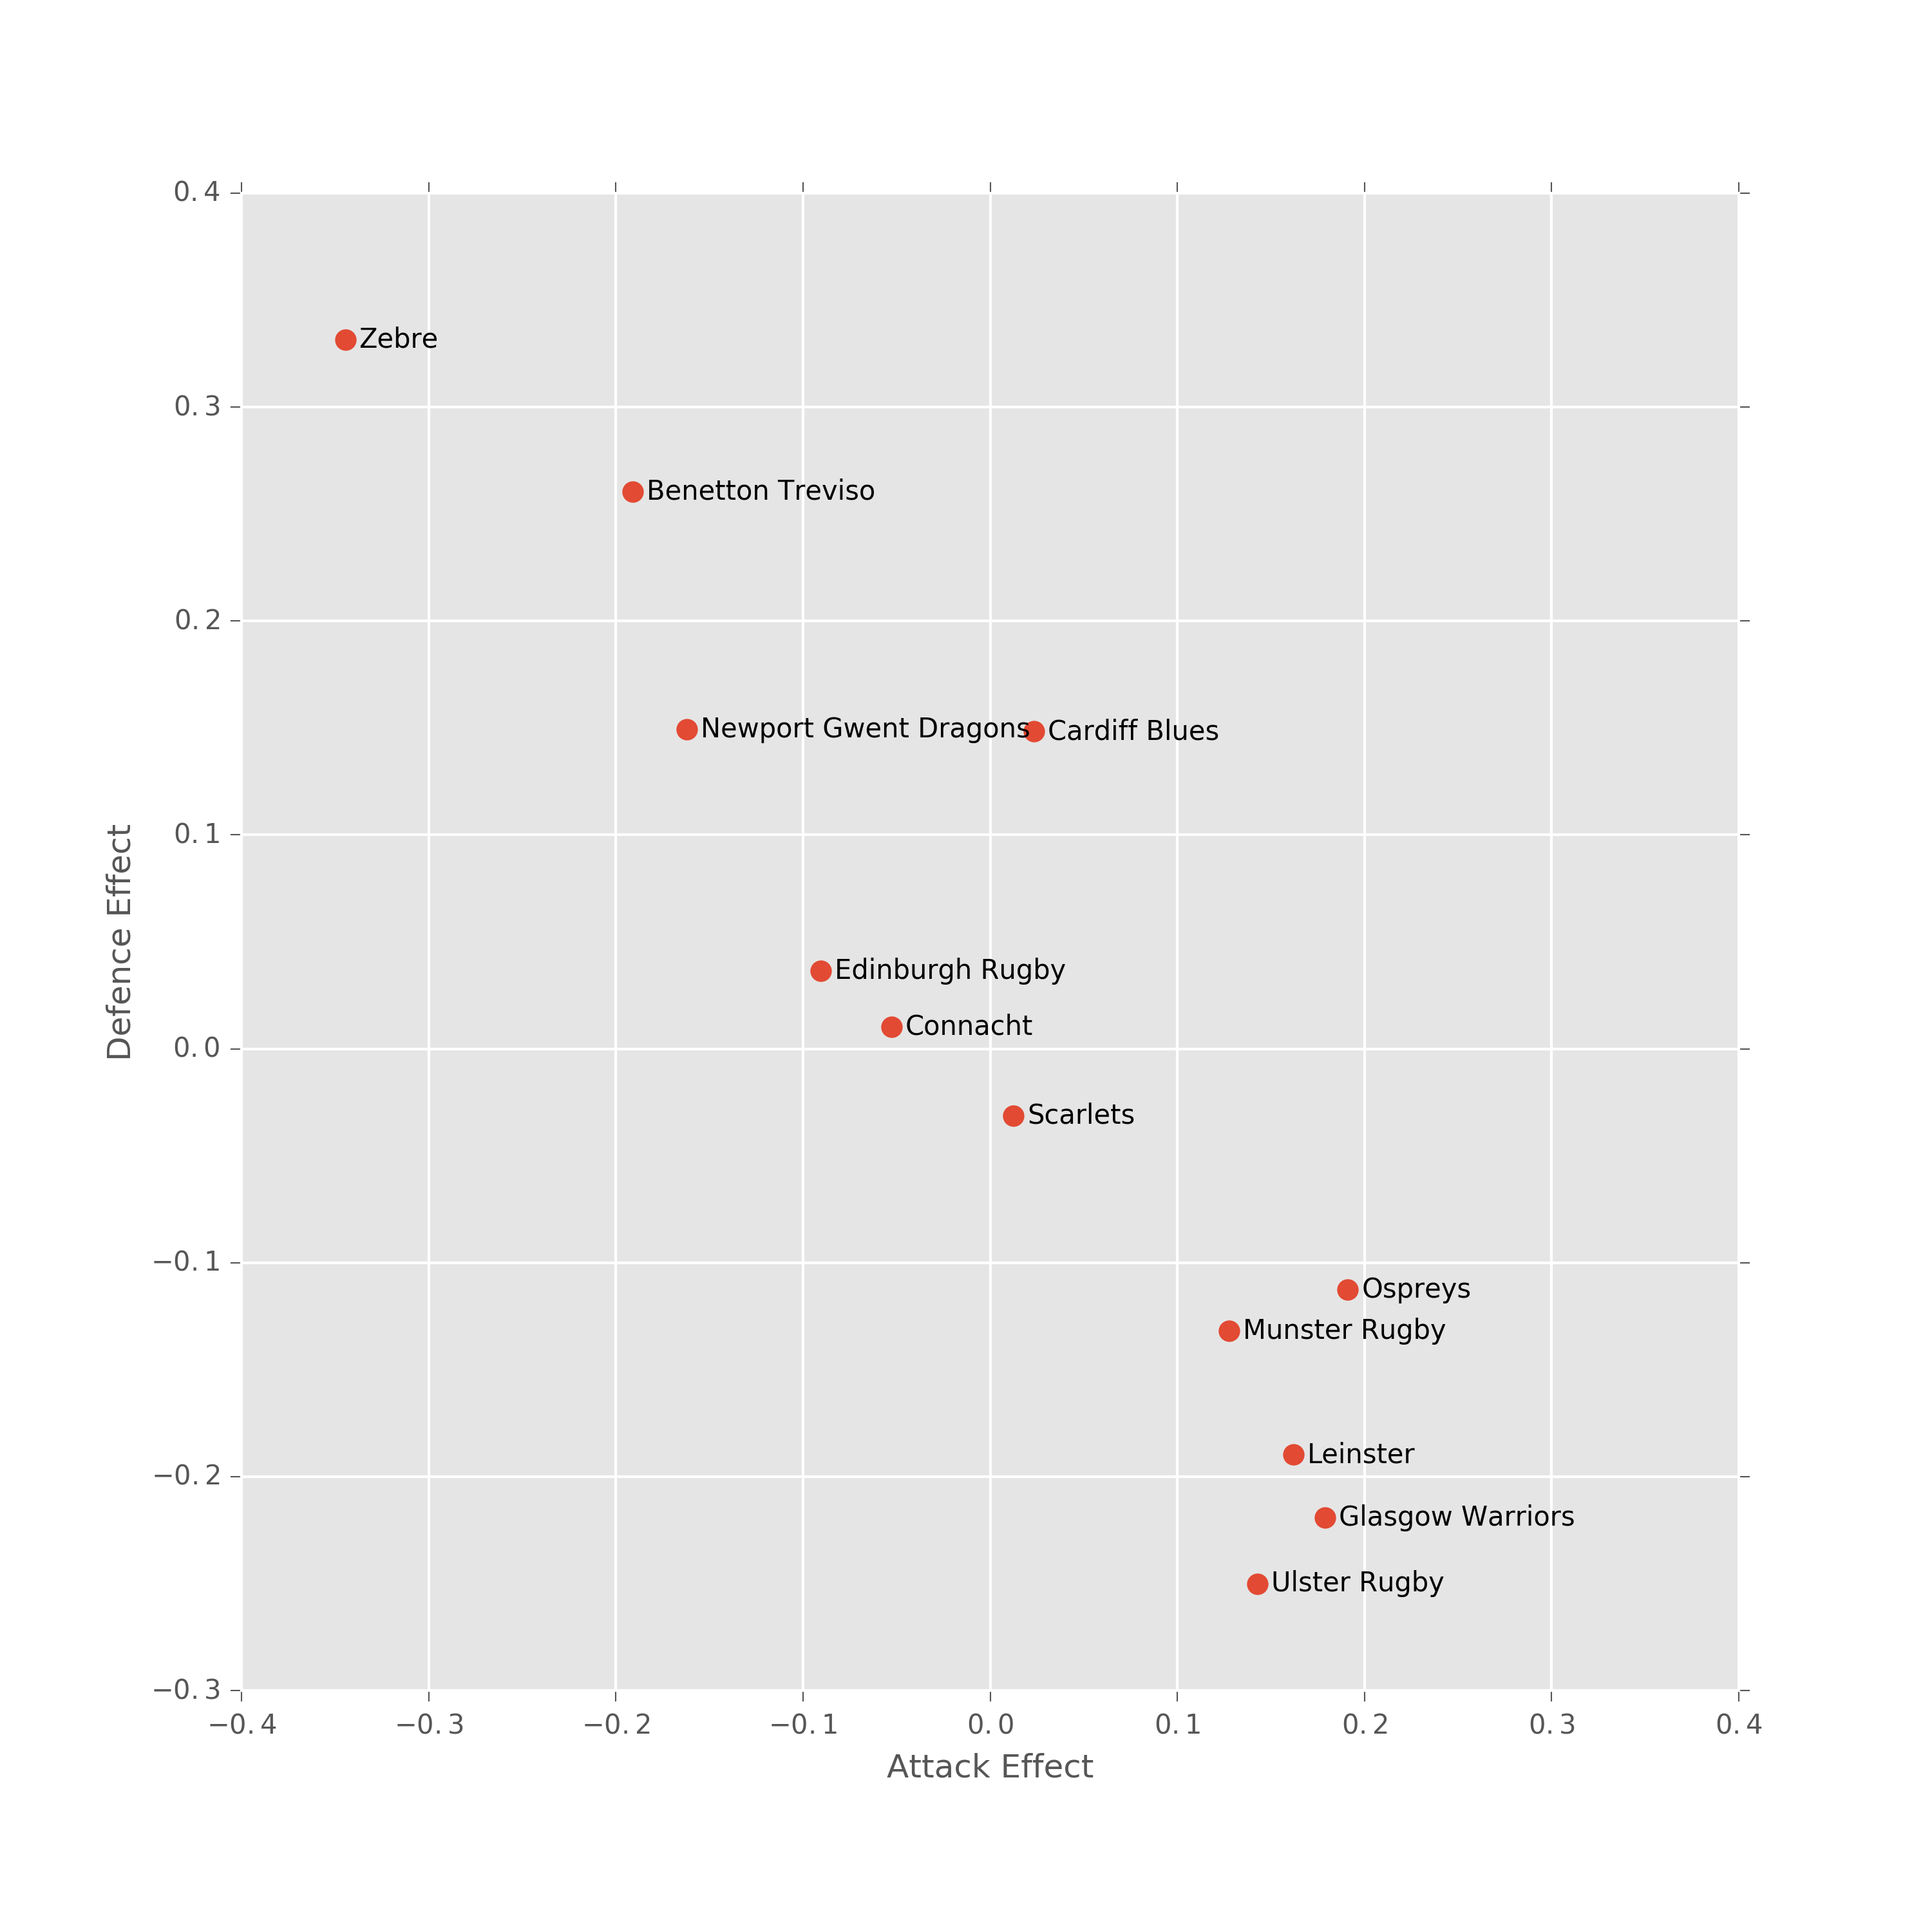 A plot of the offensive versus     defensive strengths of each team in the Pro12.